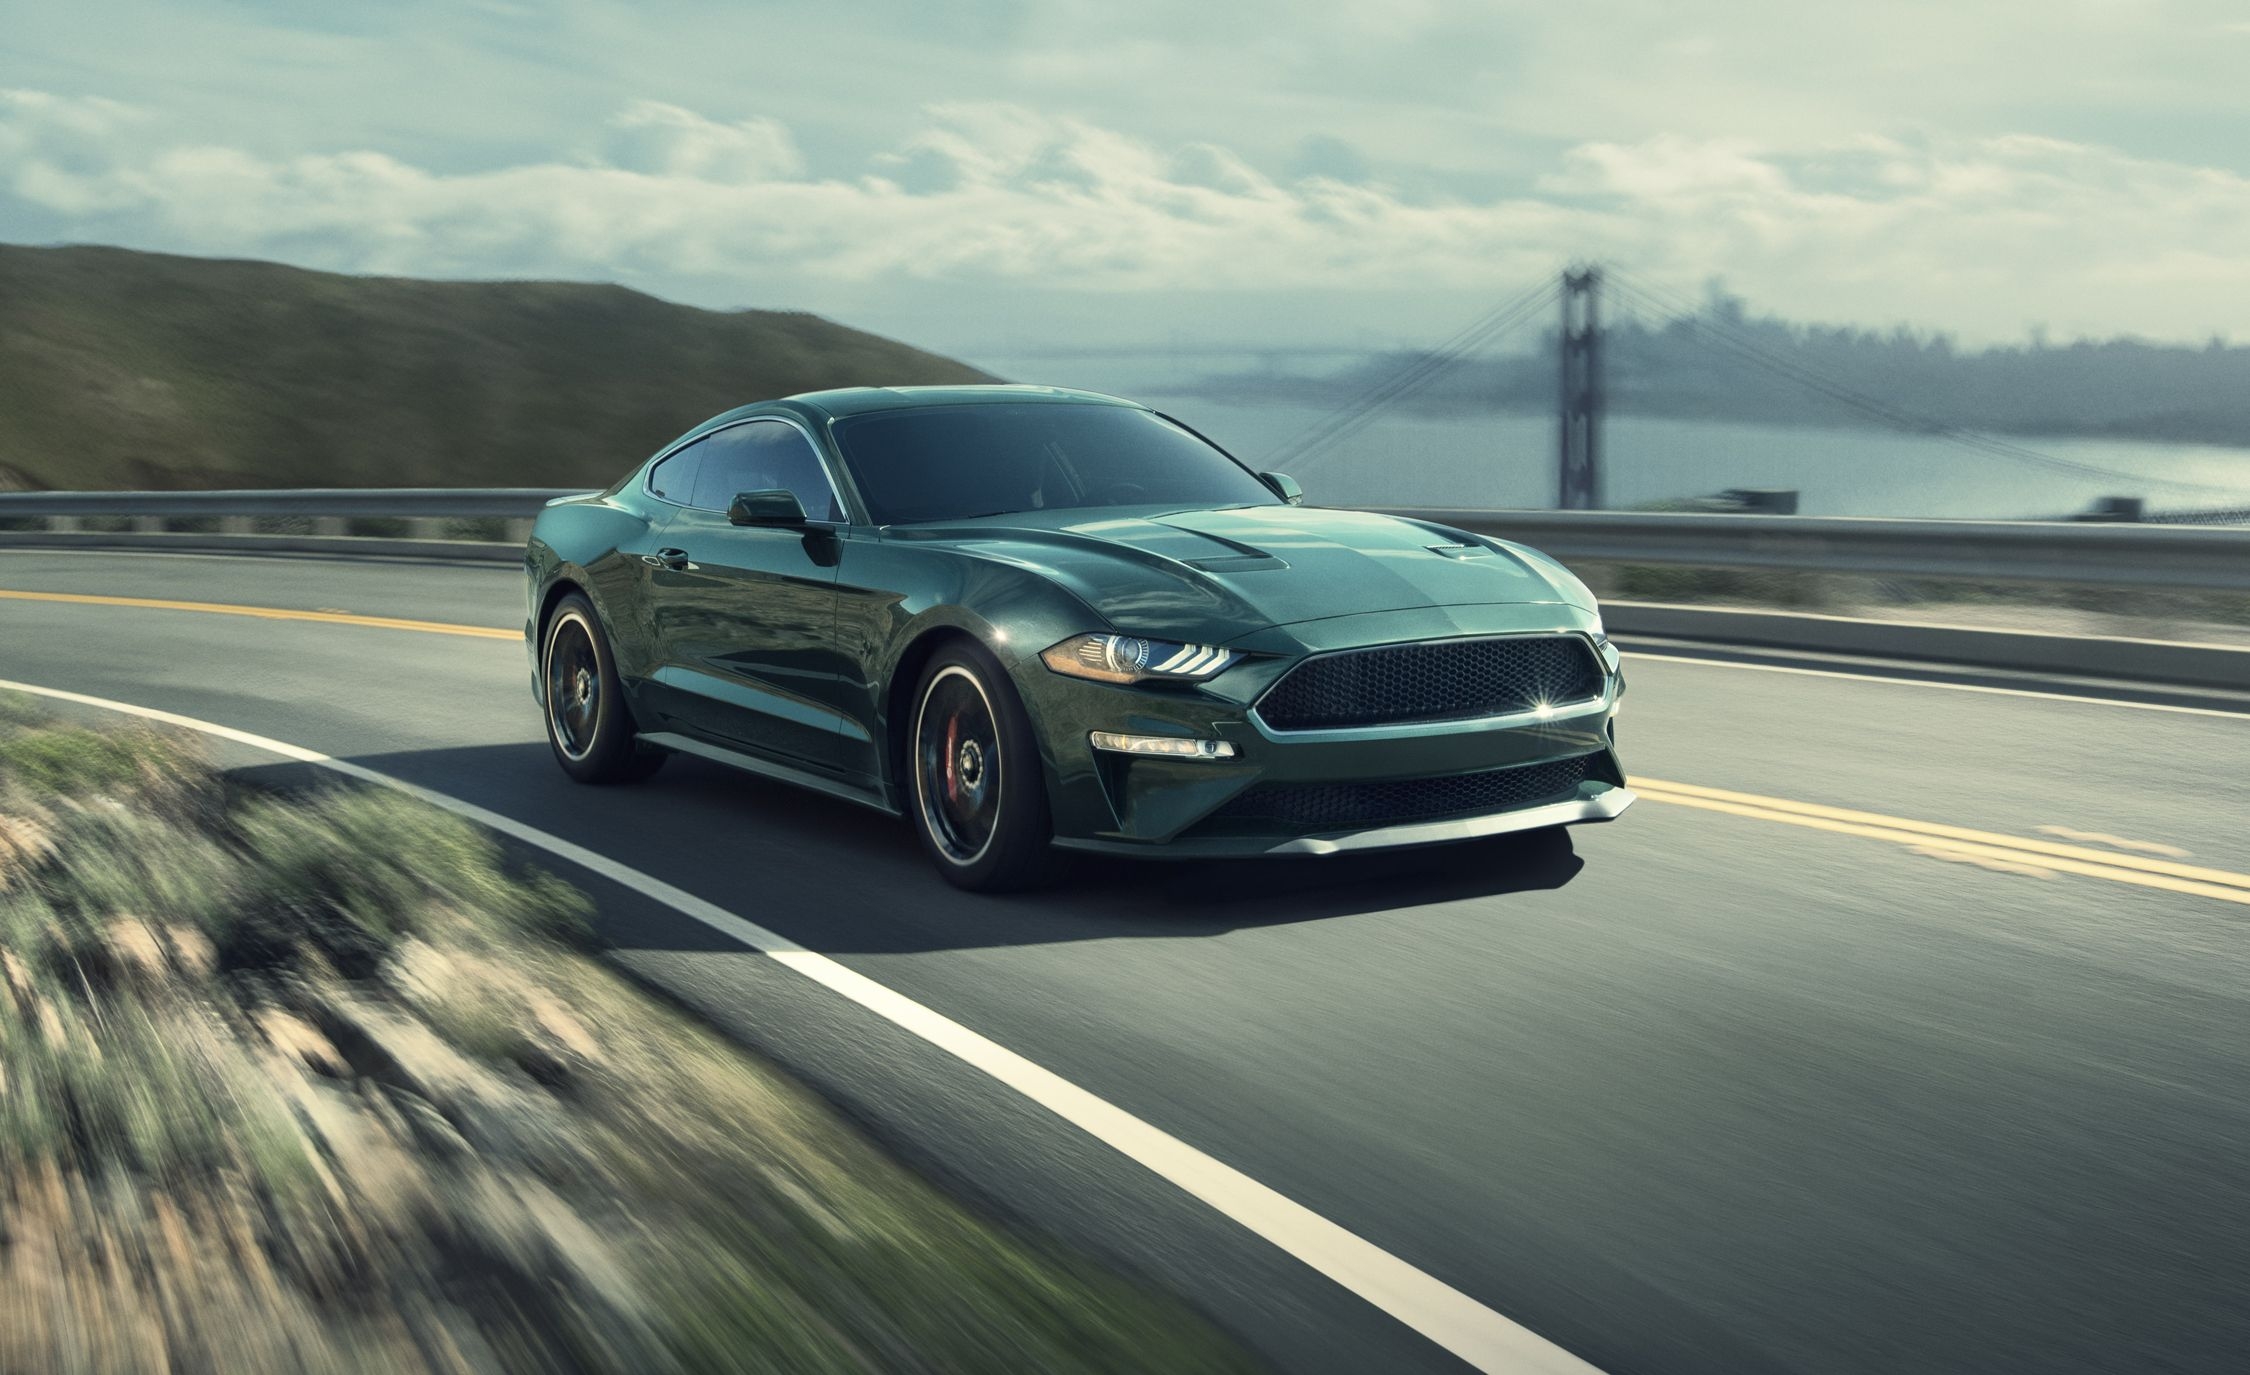 2019 ford mustang bullitt driven riding 480 loud horses review car and driver